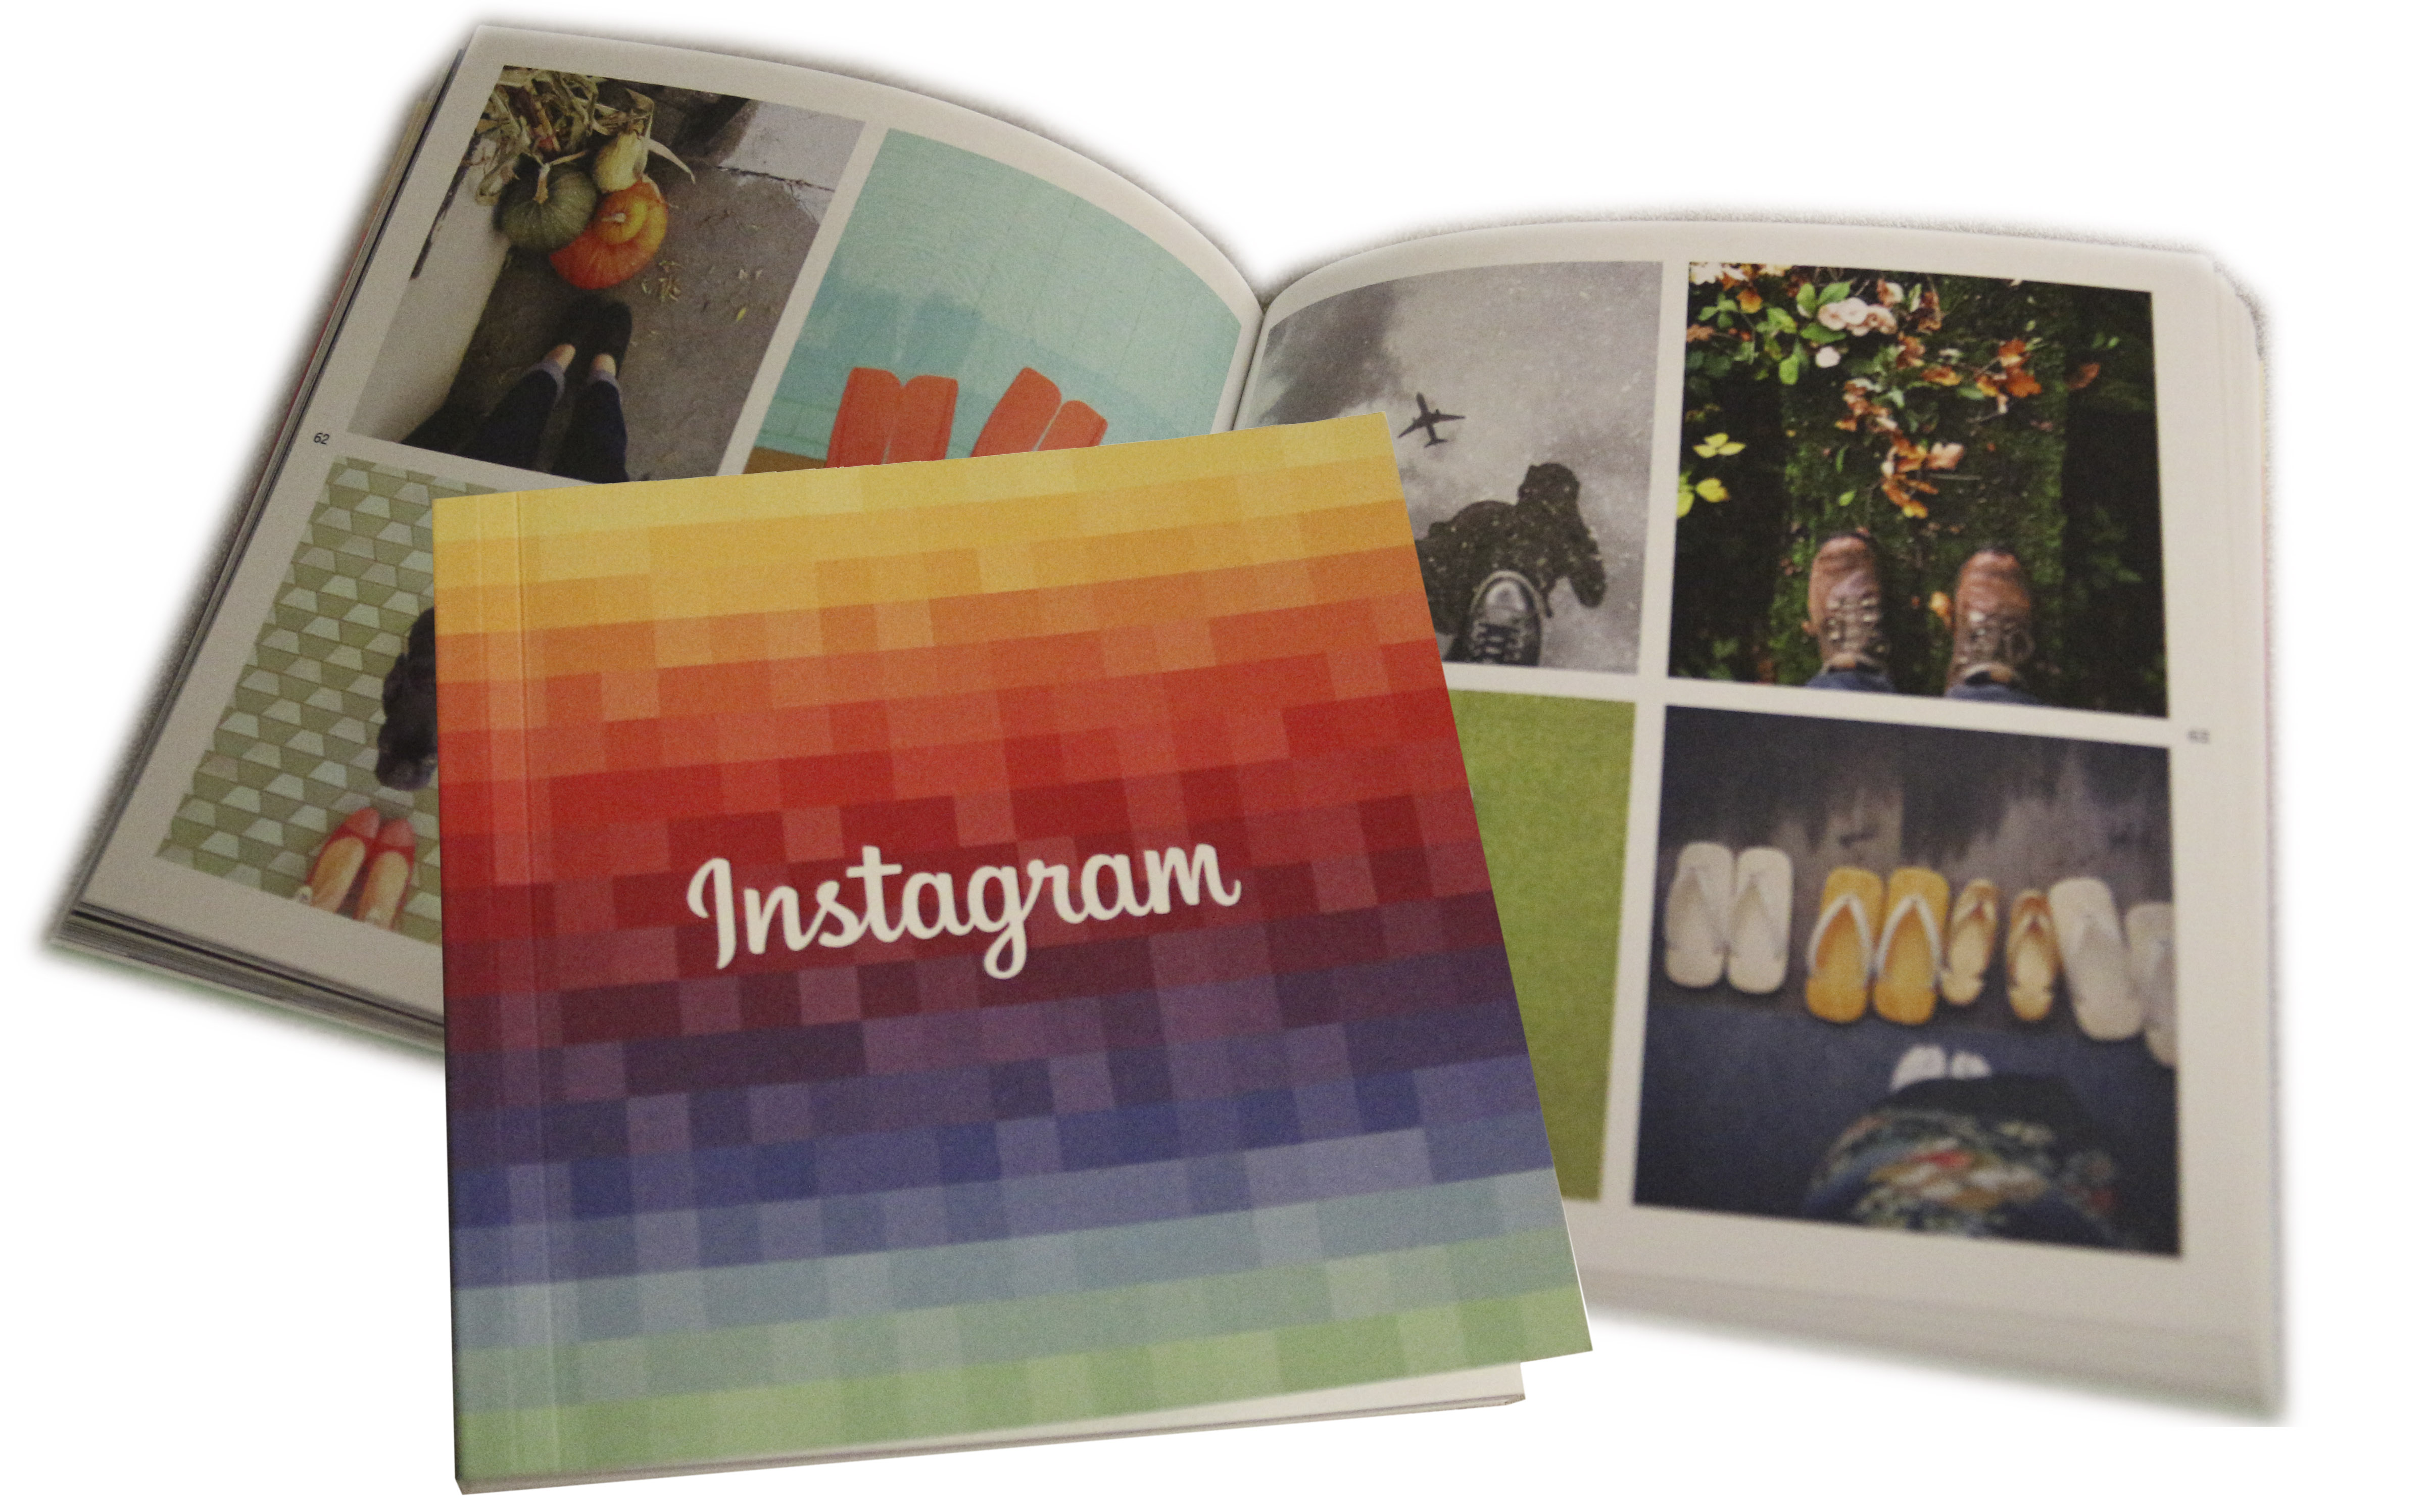 5 Ways Instagram Assists Market Your Business - Image 1